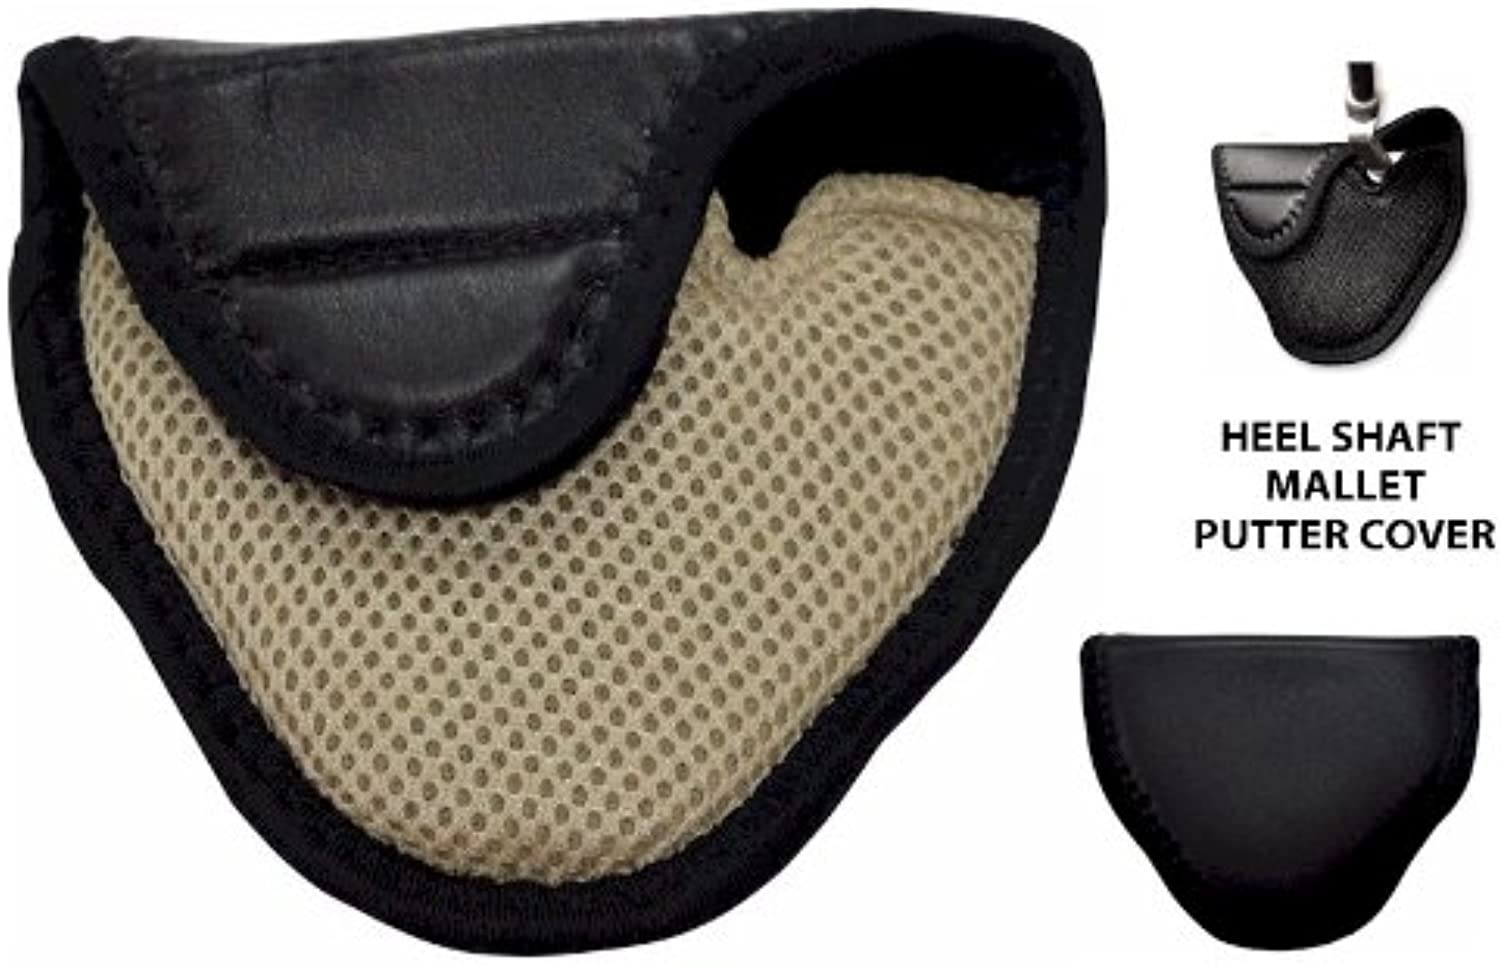 Synthetic Leather Mallet Putter Cover for Heel Shafted Putters (Left Handed, Beige) by JP Lann